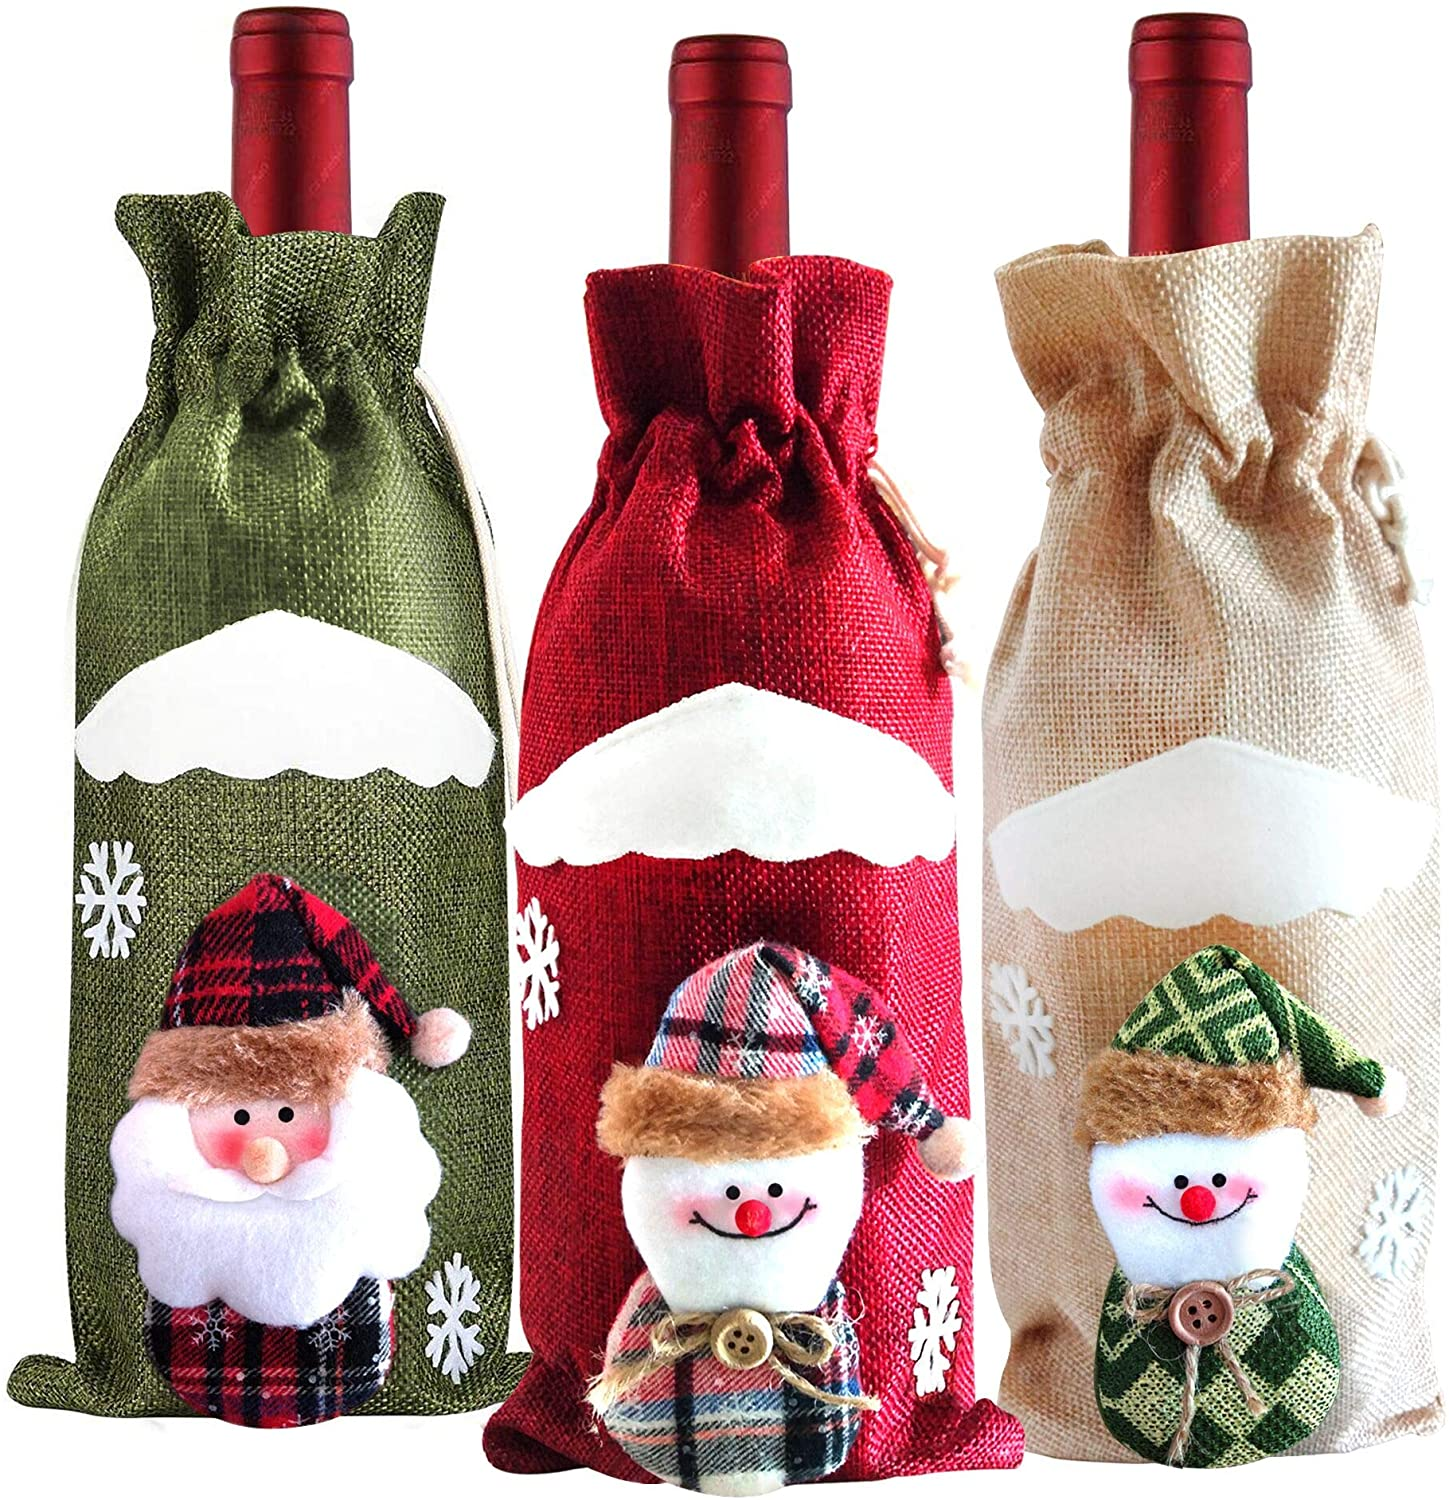 Grier Set of 3 Jute Burlap Wine Bags Drawstring Covers Gift Accessory,Wine Bottle Gift Bags for Christmas Party Decor